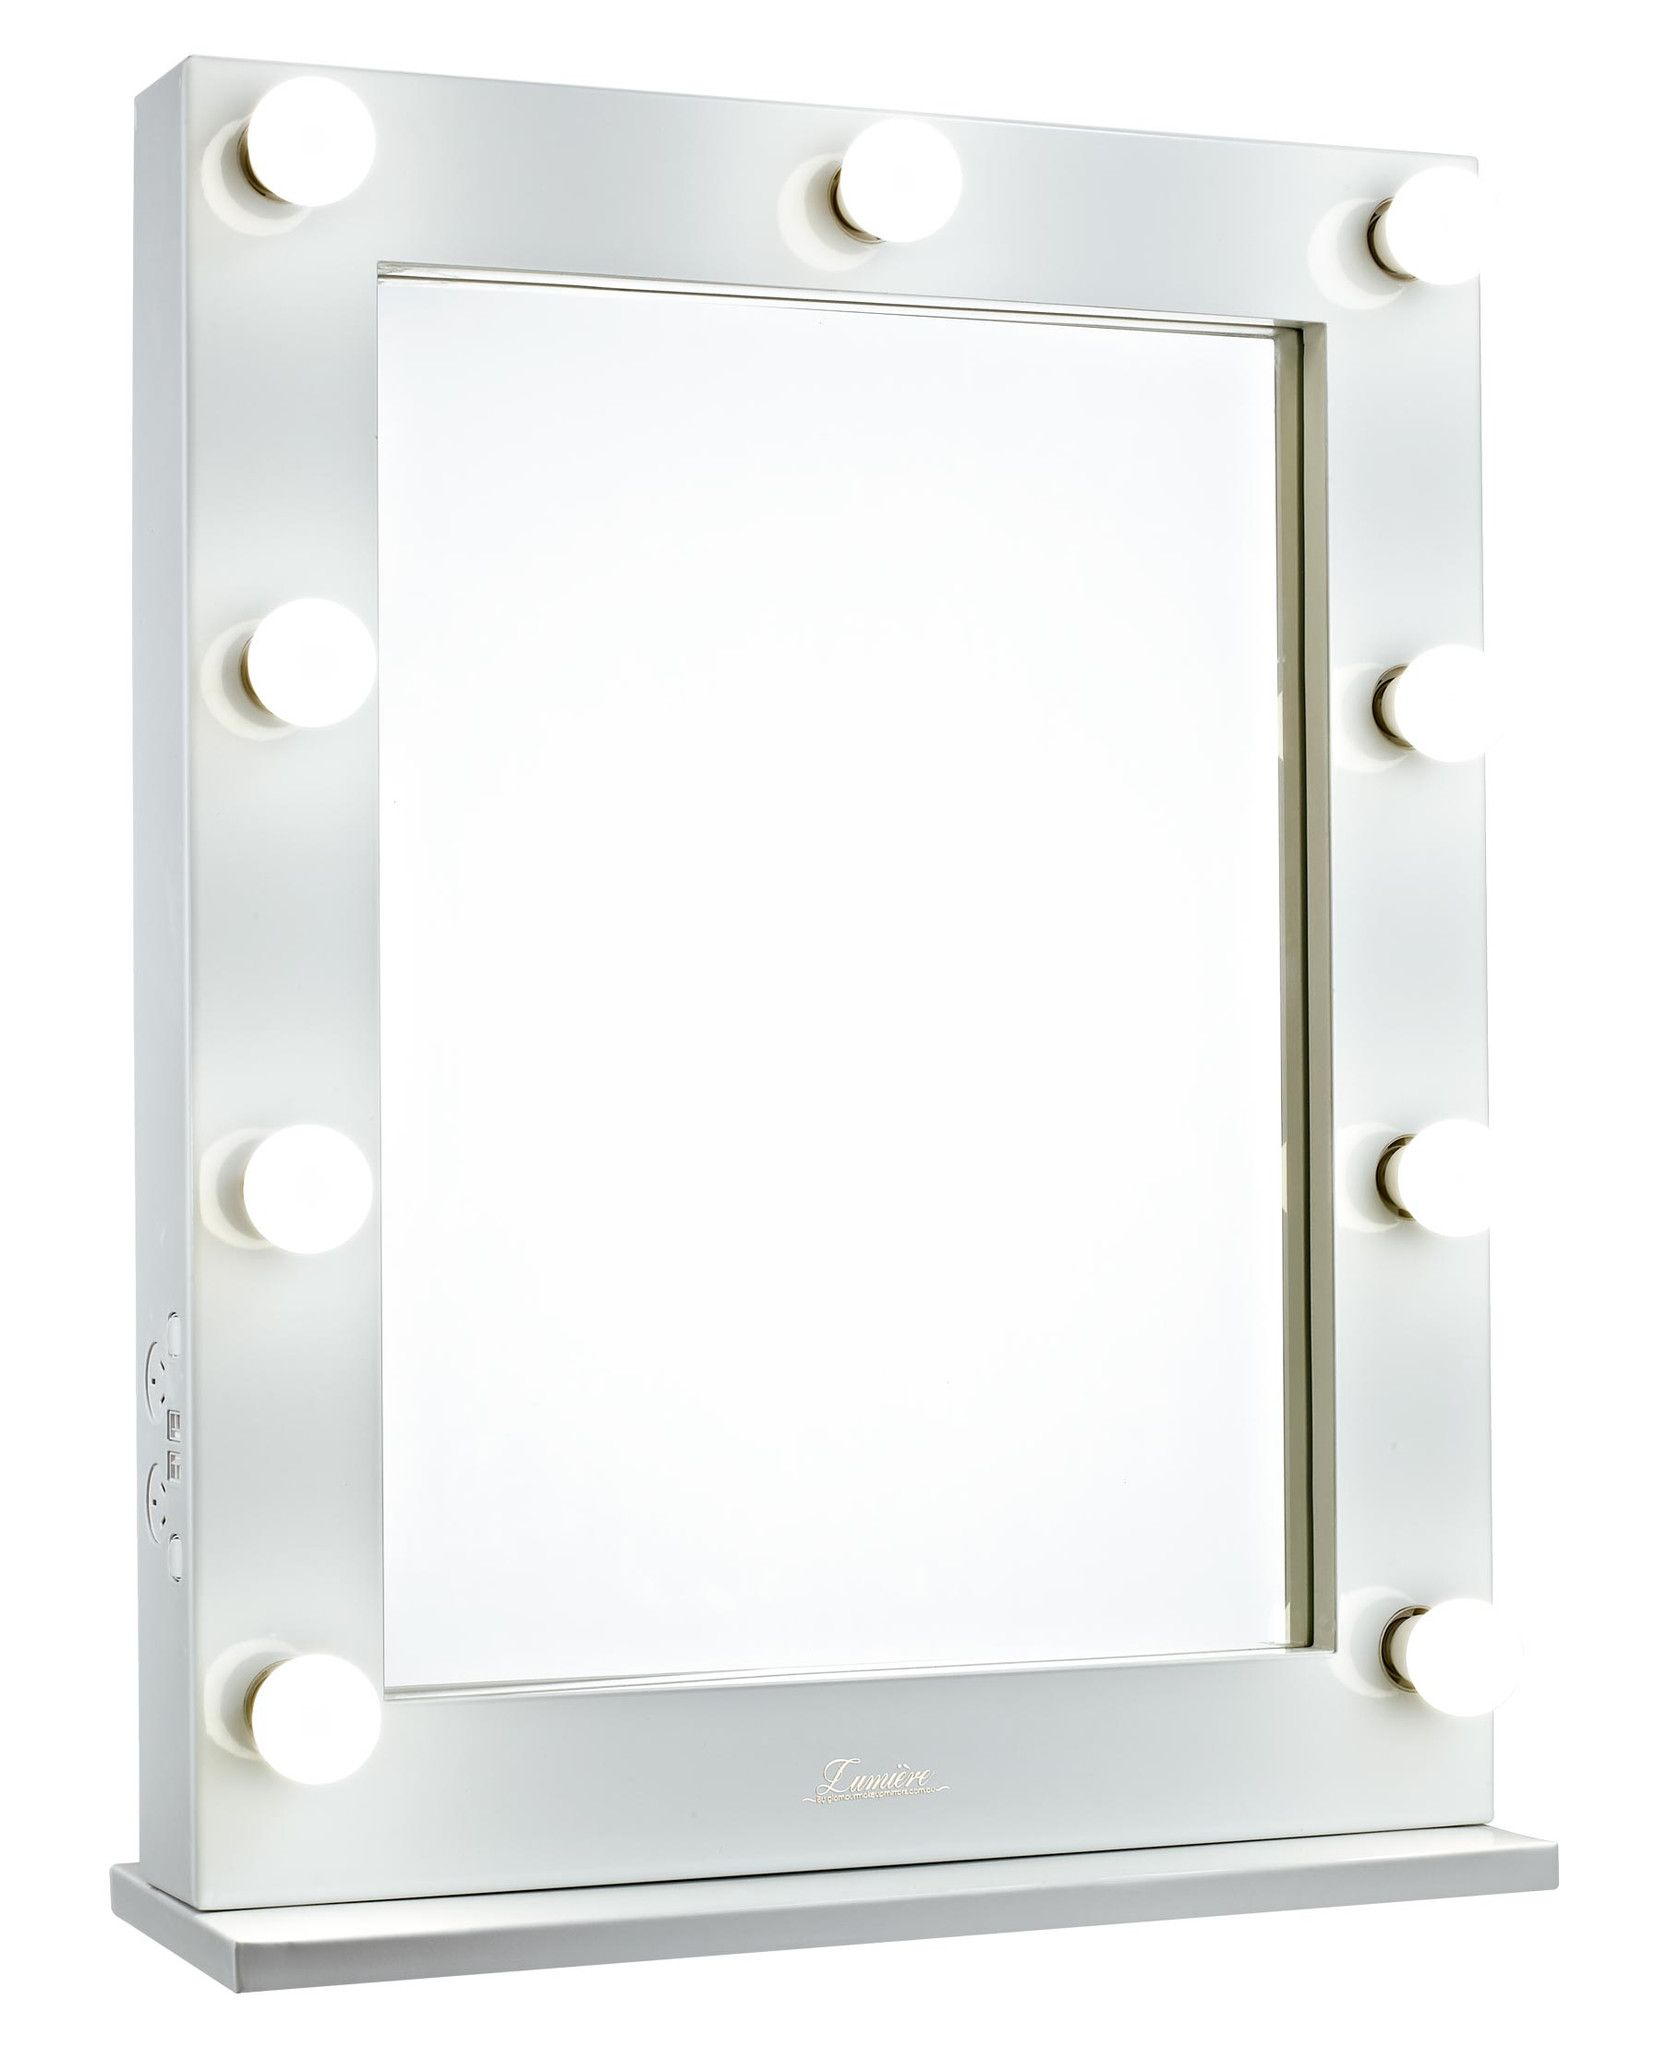 Glossy White Lighted Hollywood Vanity Makeup Mirror Front - Making a vanity mirror